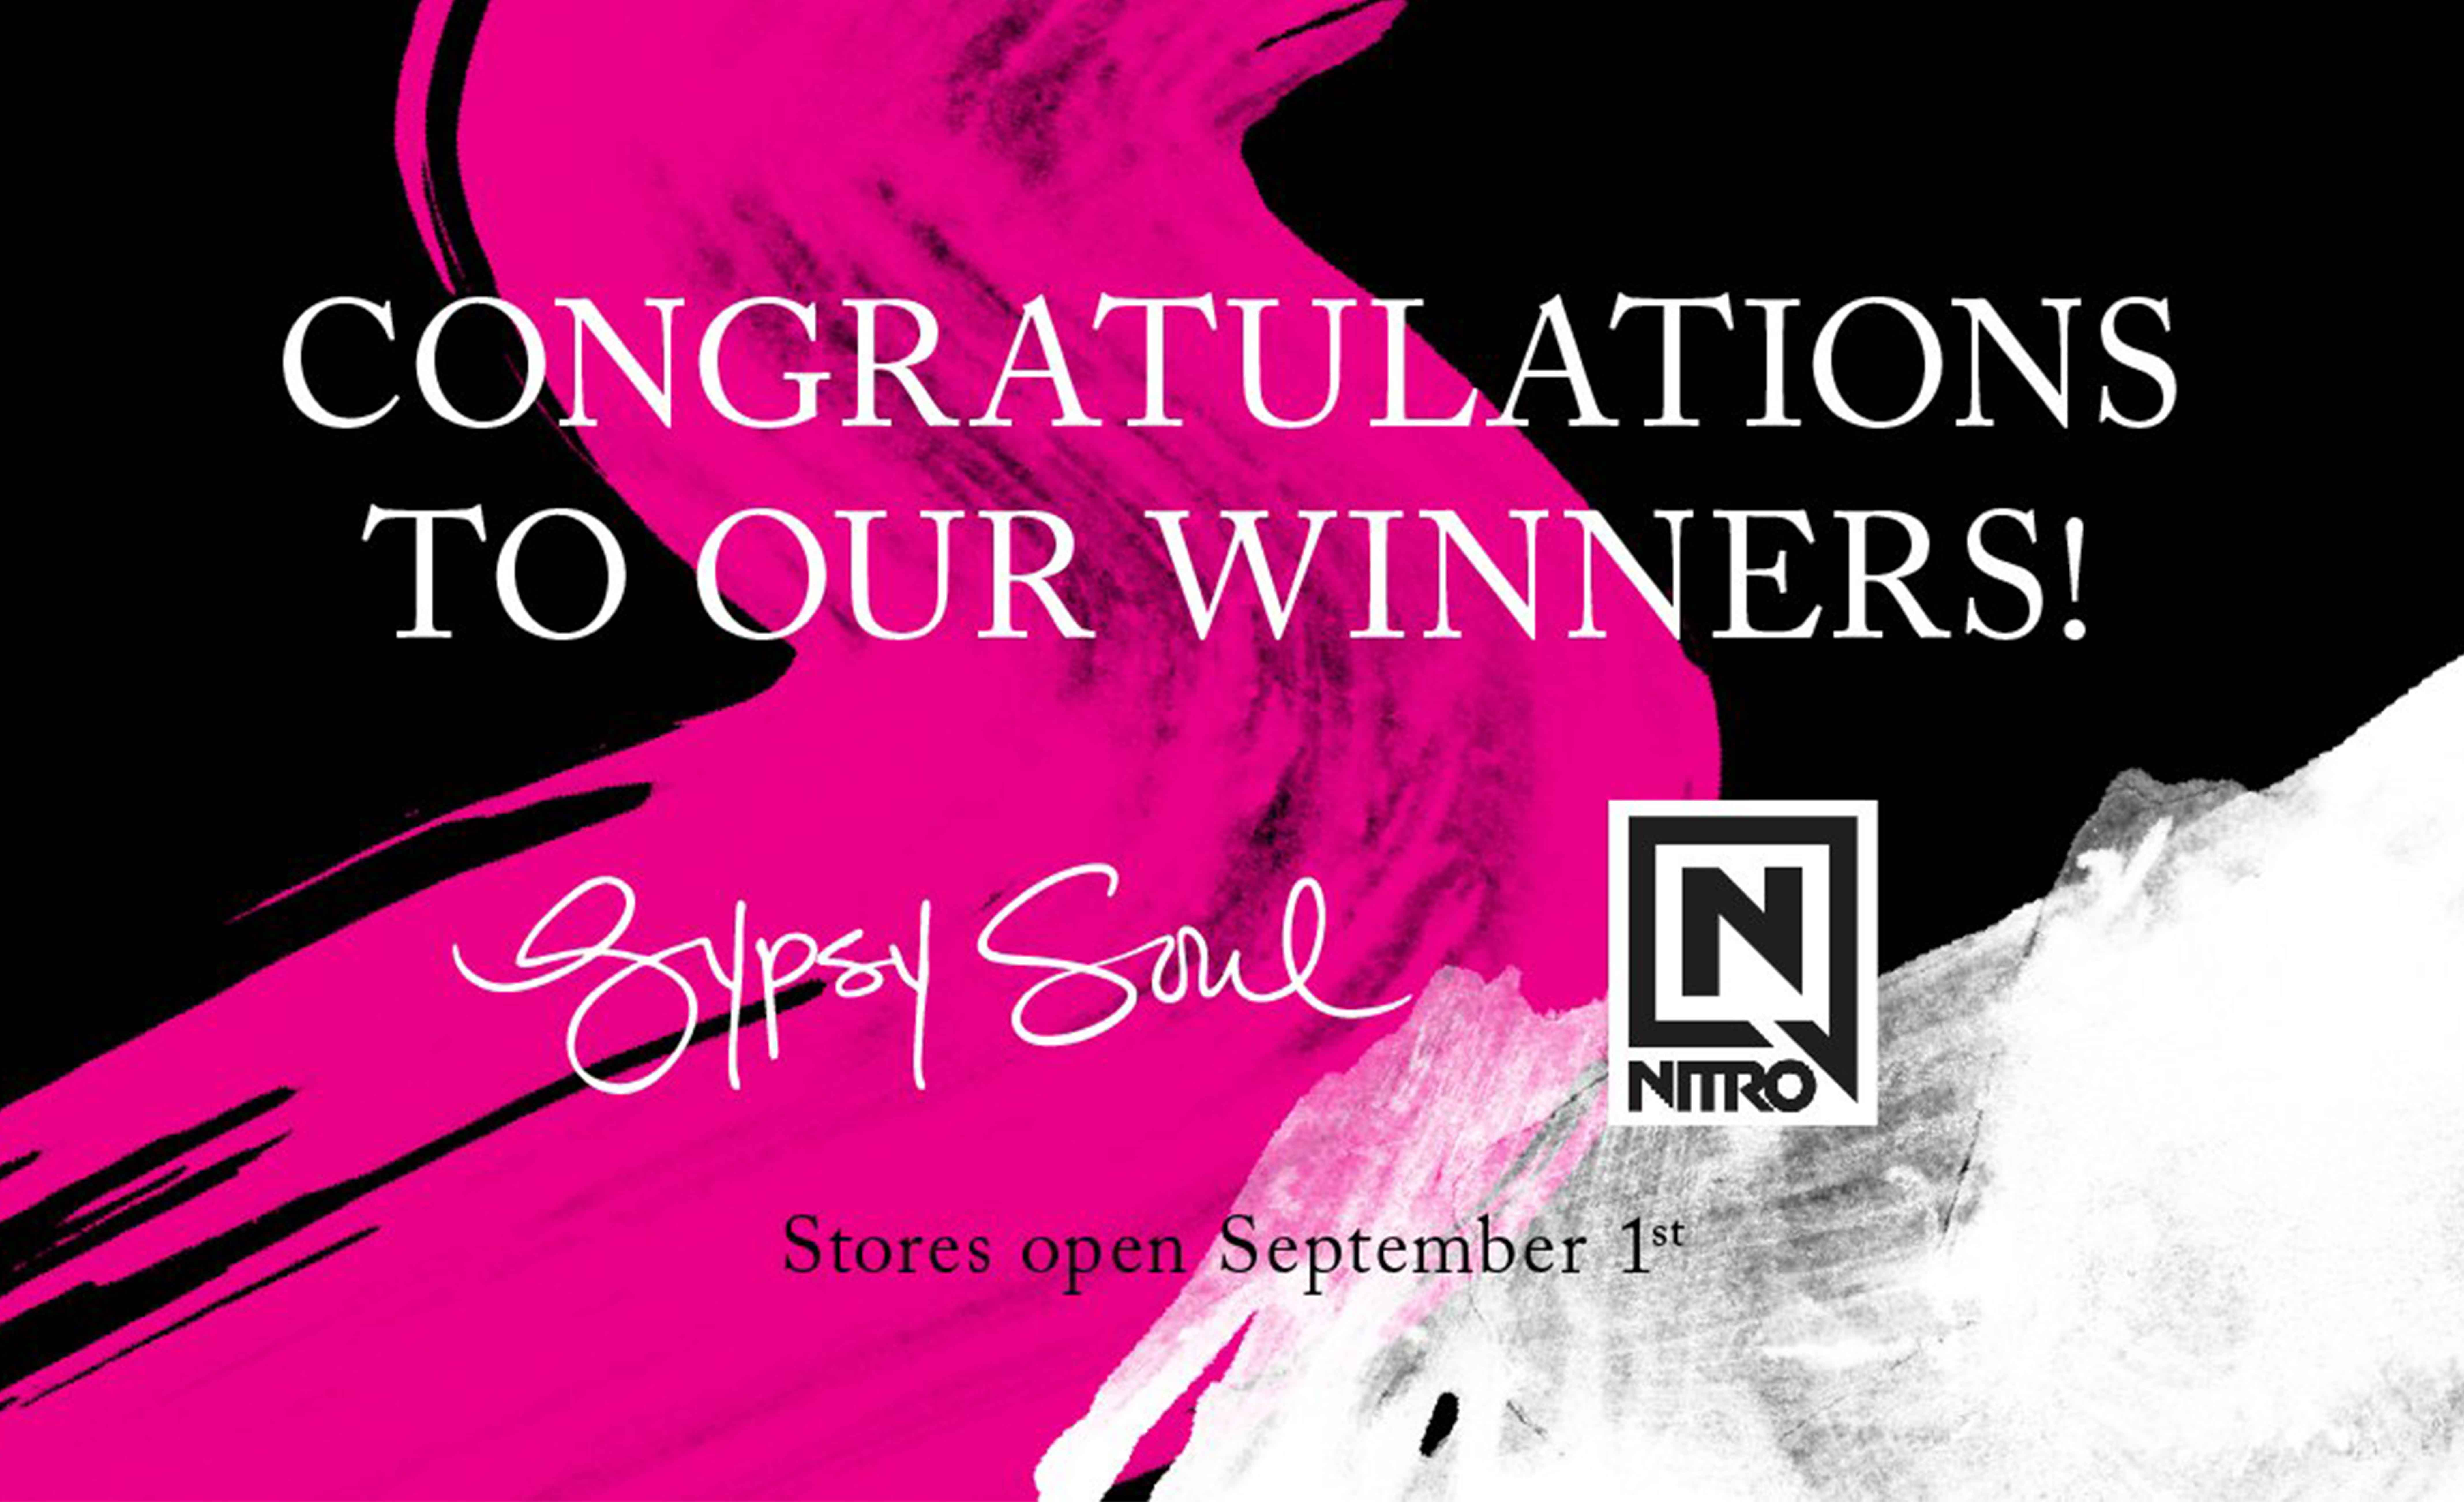 ANNOUNCING OUR WINNERS!